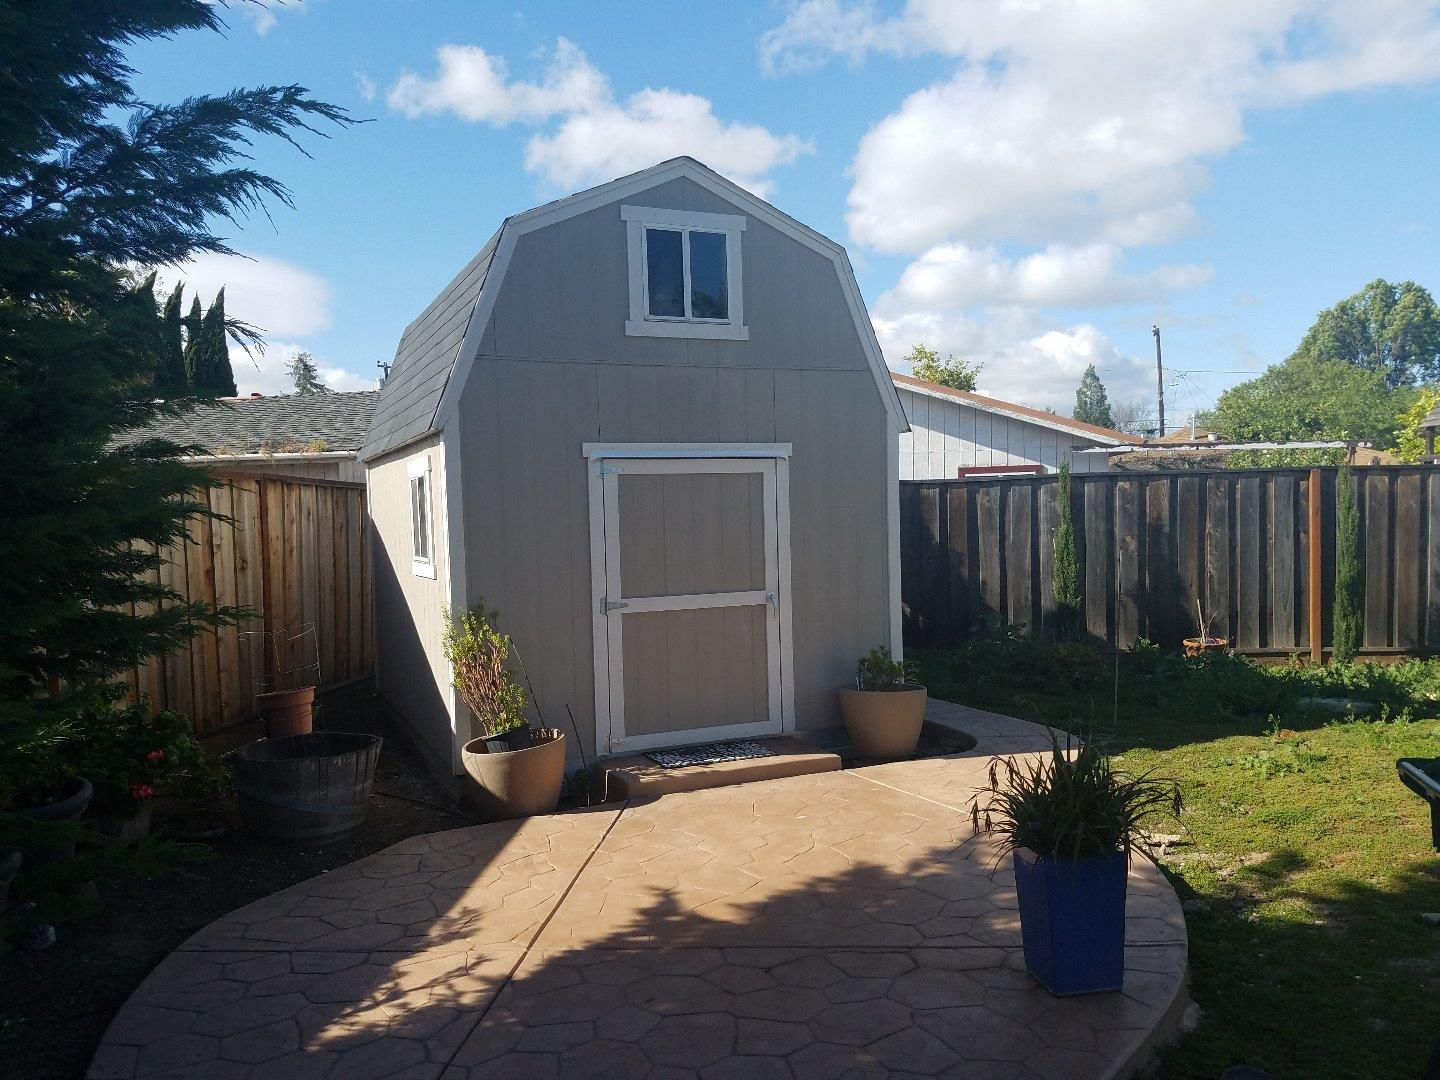 Additional photo for property listing at 3031 Humbolt Avenue  Santa Clara, California 95051 United States